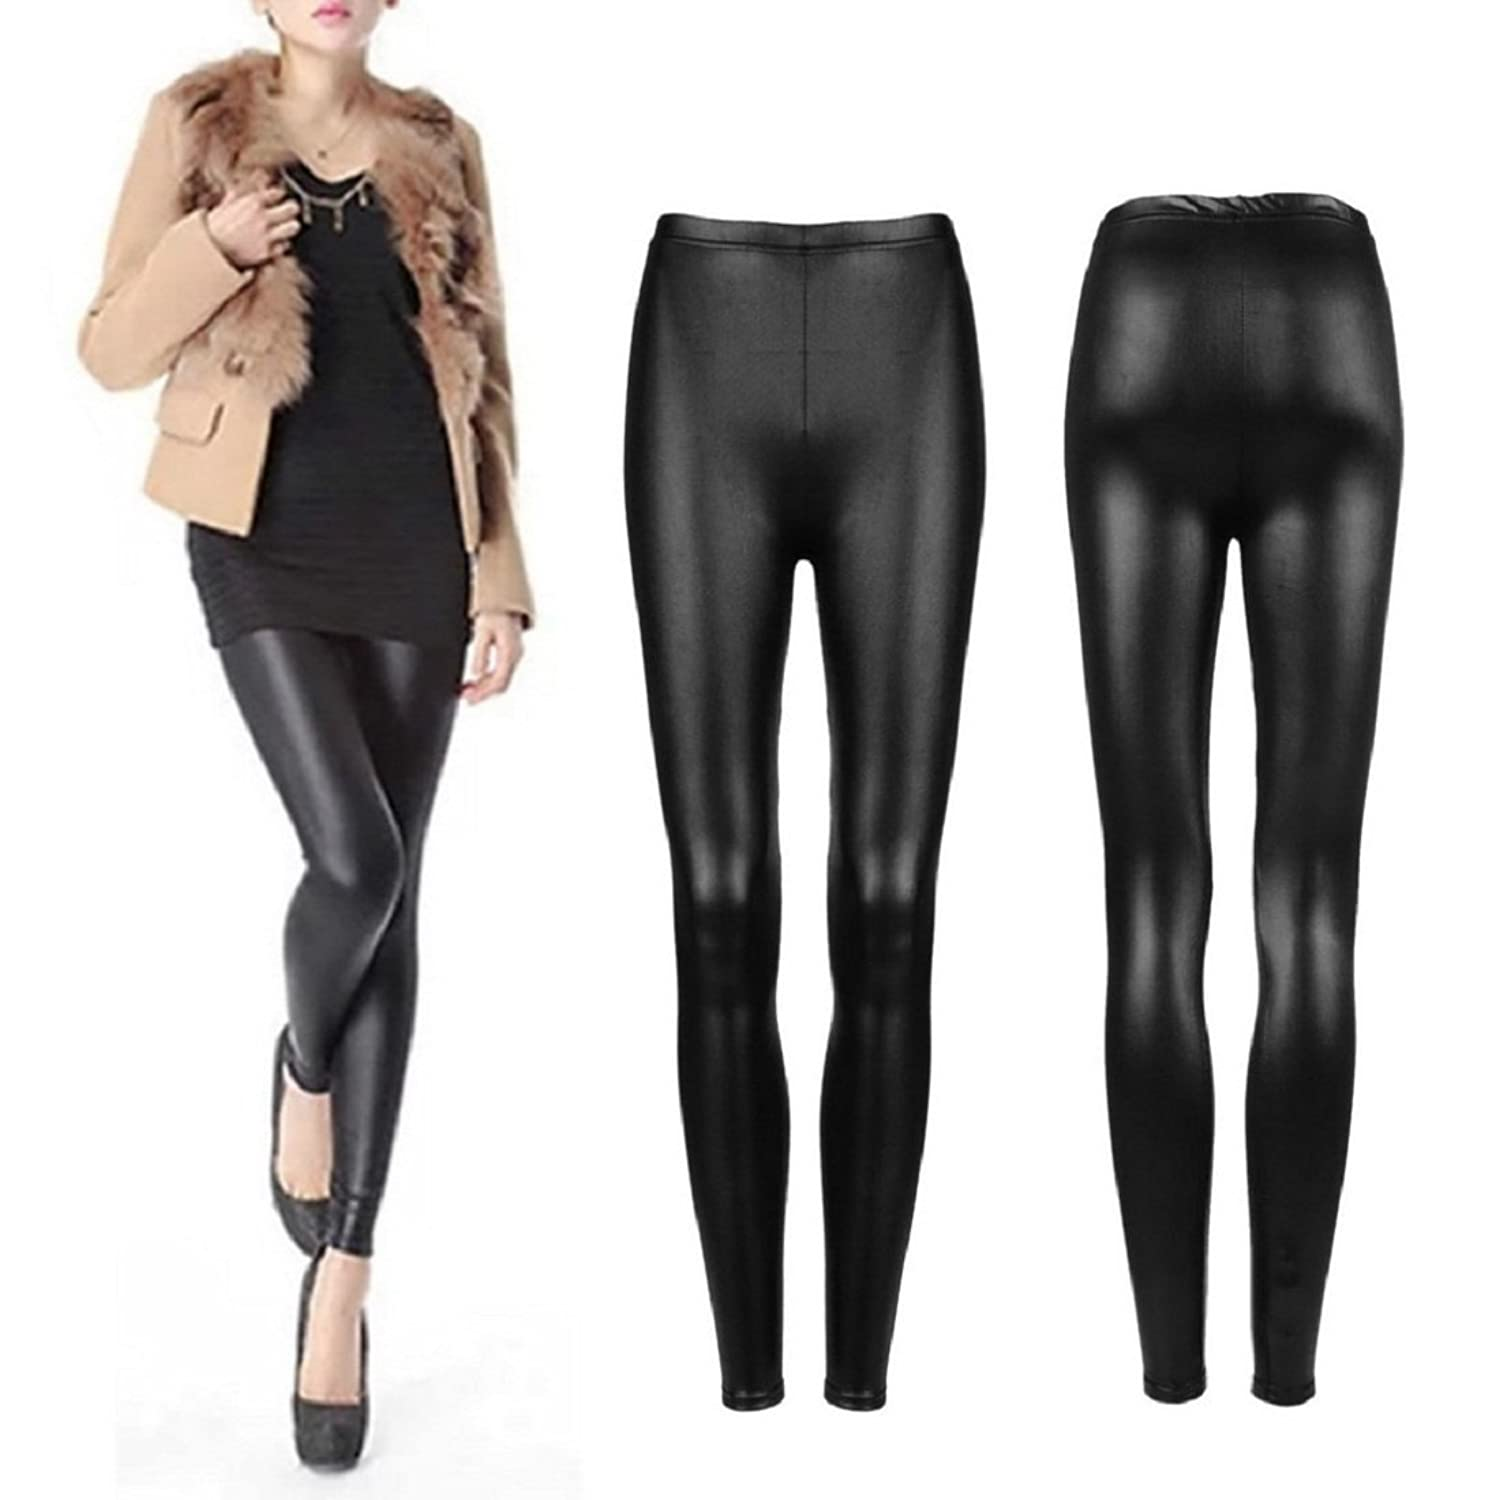 Timbre PU Leather leggings Mid Waist Faux Leather Coated Stretch Pants for Women